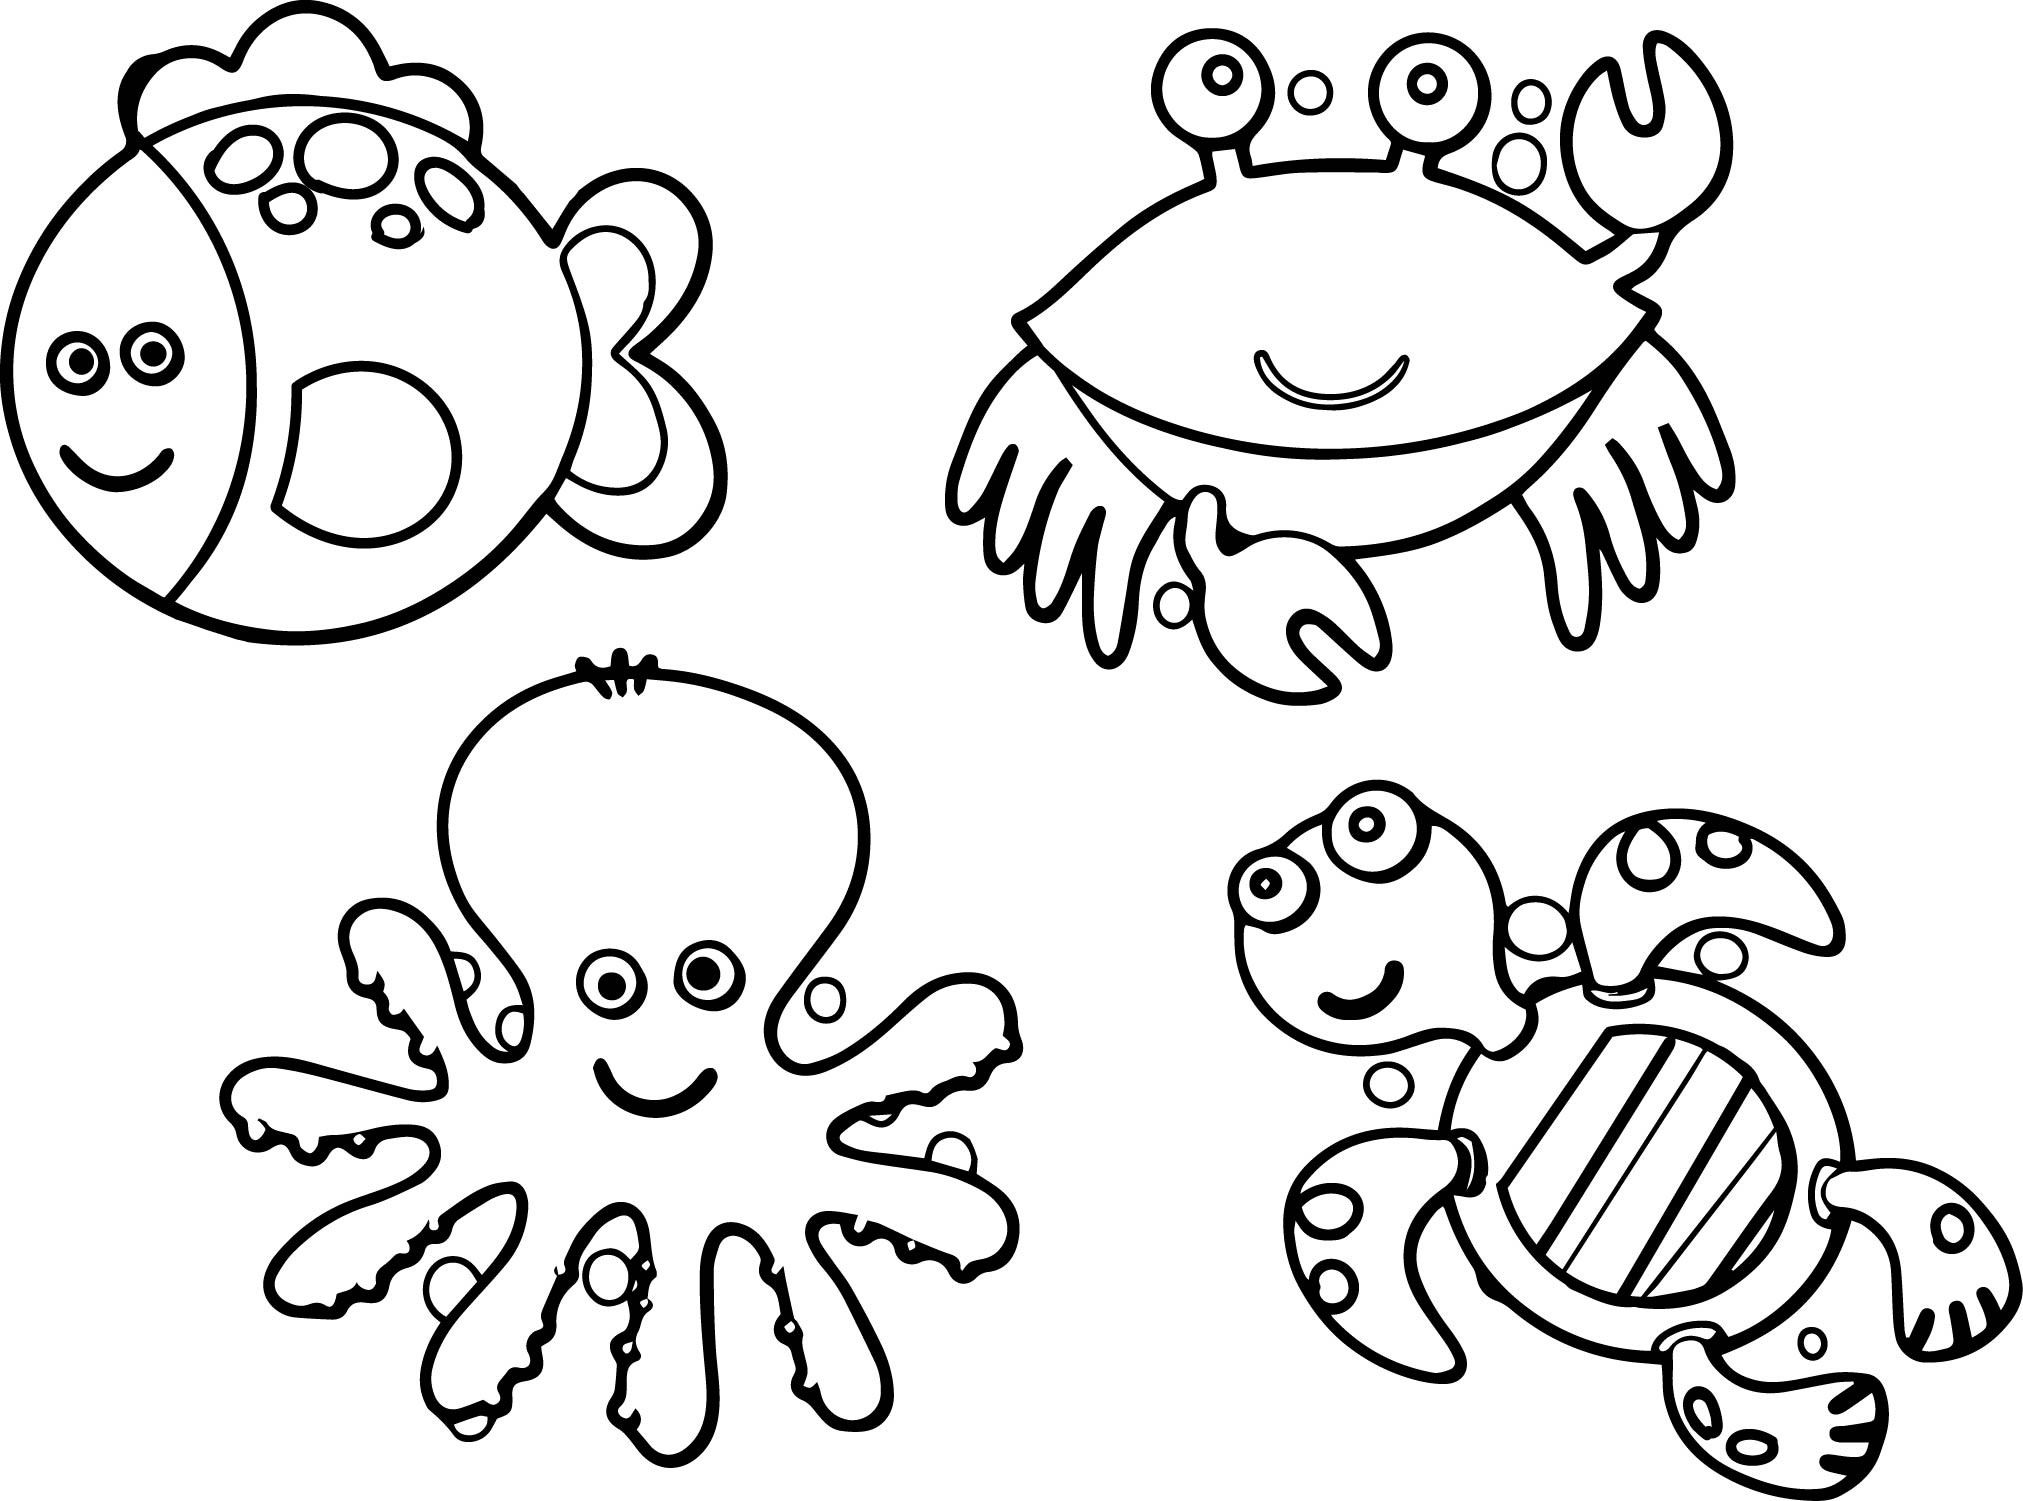 Sea Animals Coloring Pages Free Draw To Color And Ocean Coloring Pages Animal Coloring Books Animal Coloring Pages